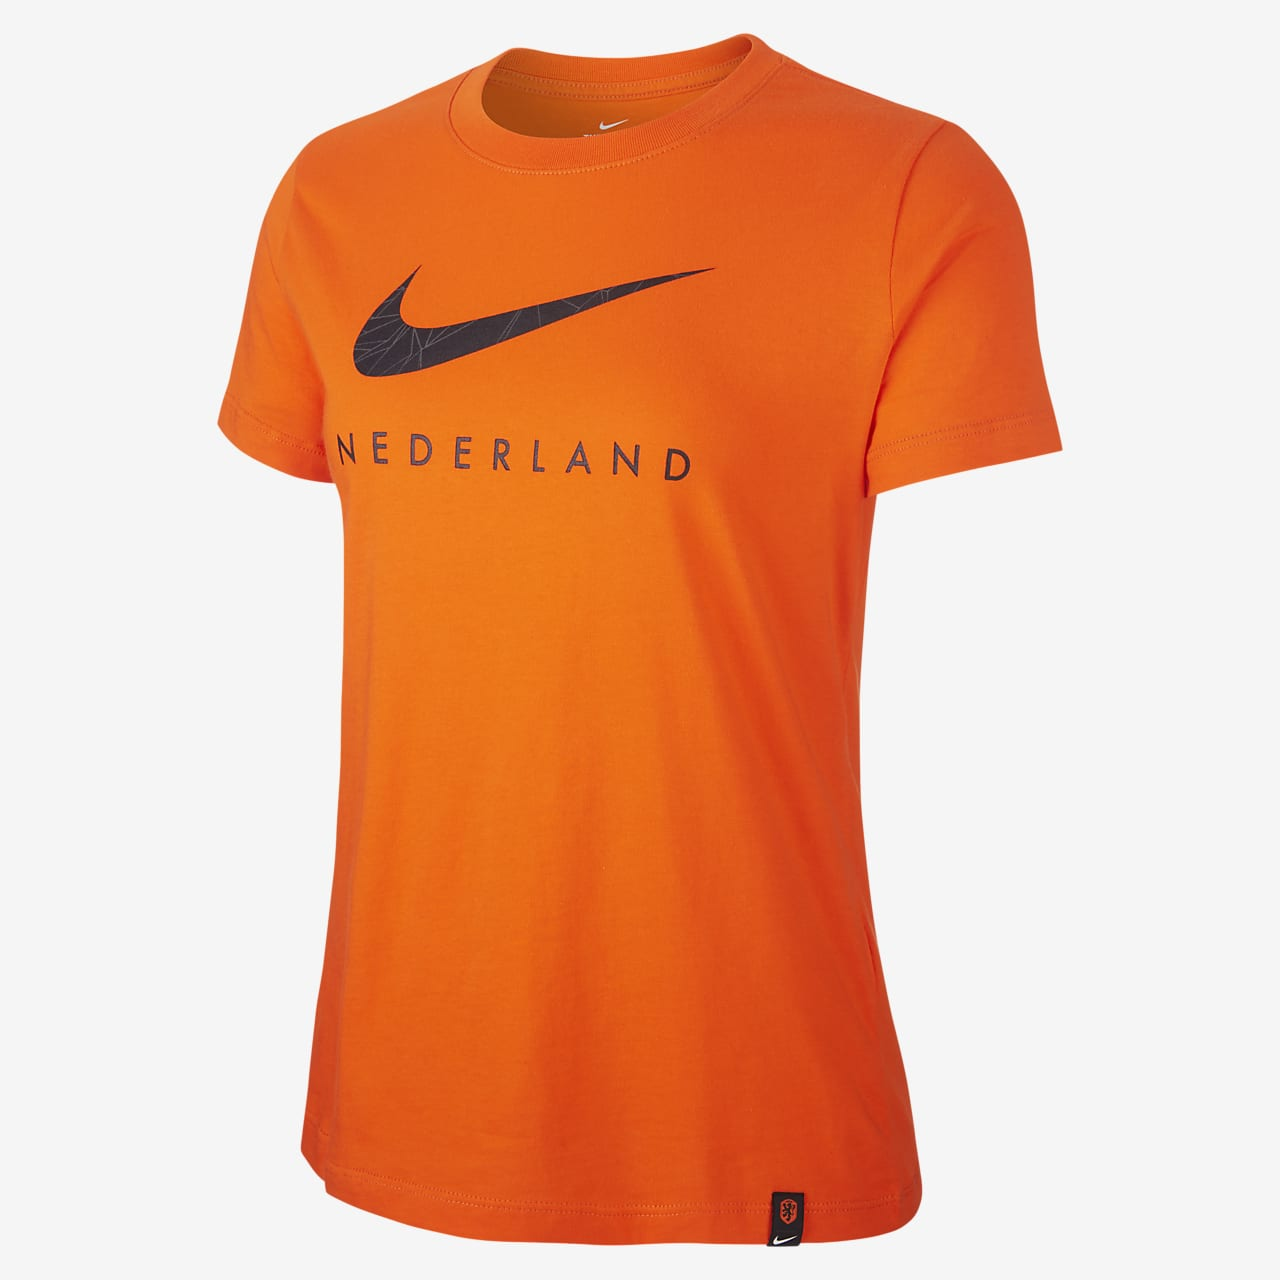 Netherlands Women's Football T-Shirt